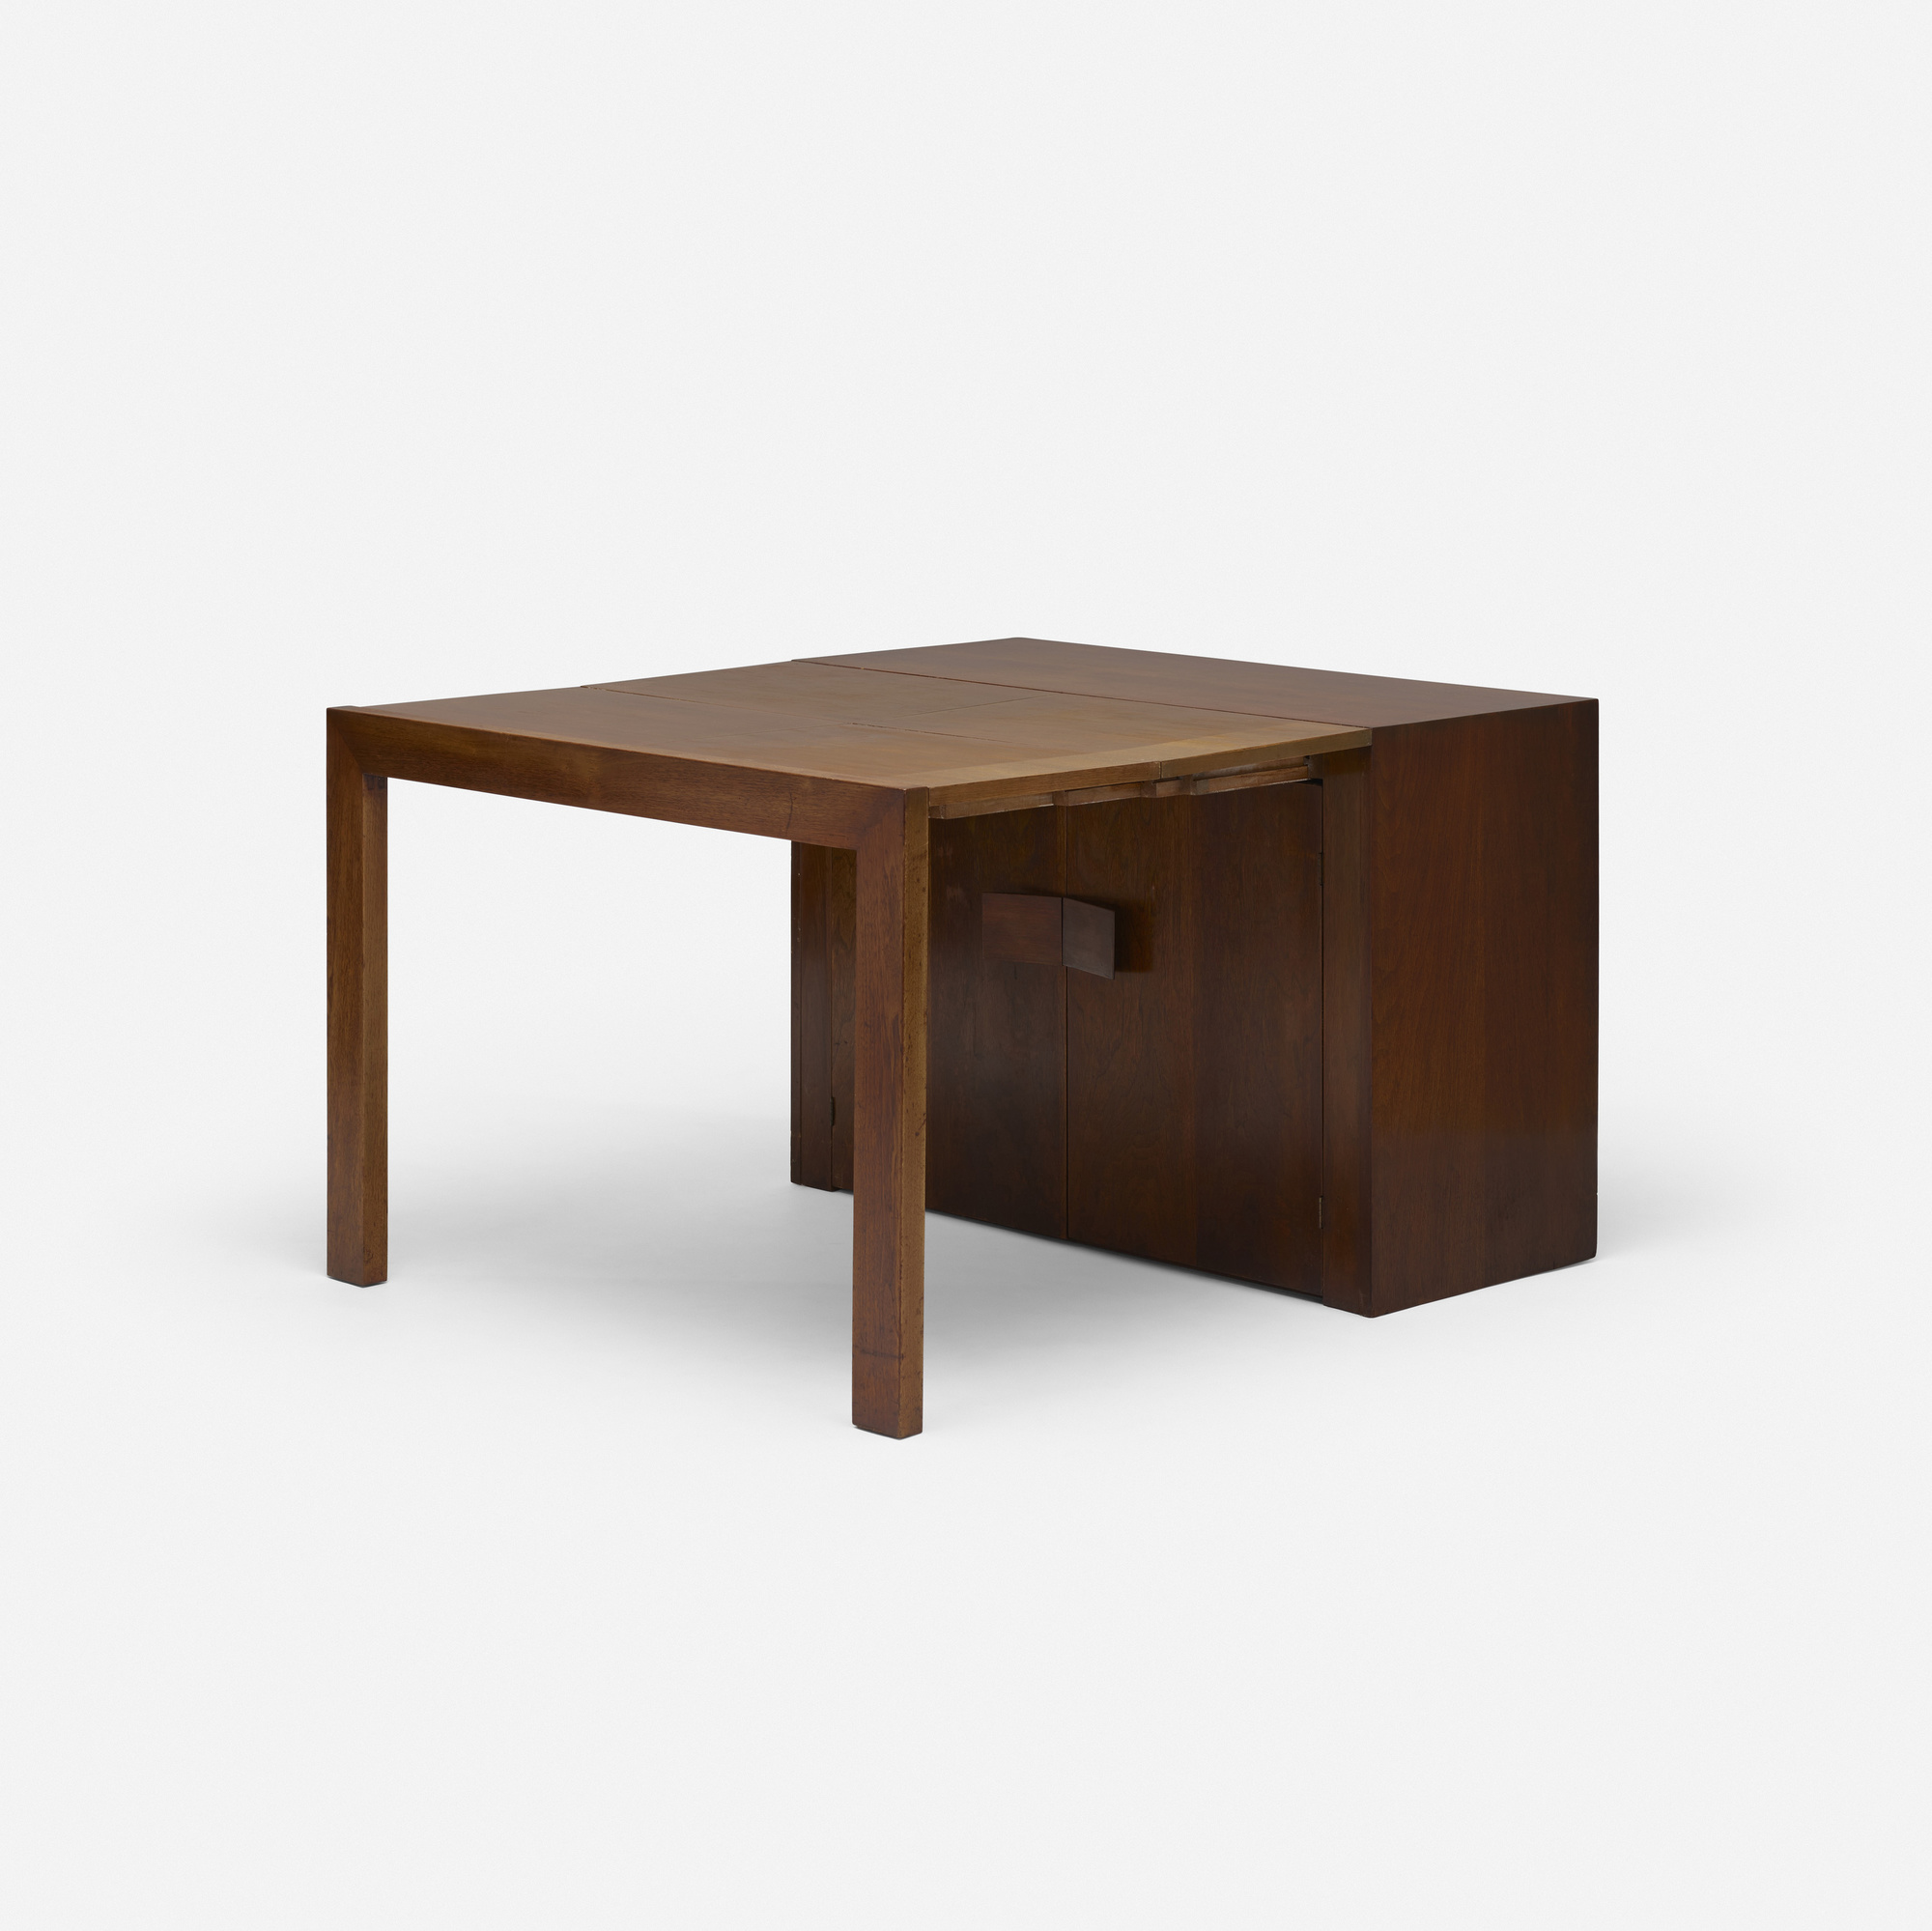 152: Milo Baughman / extension dining table, model 104 (1 of 3)